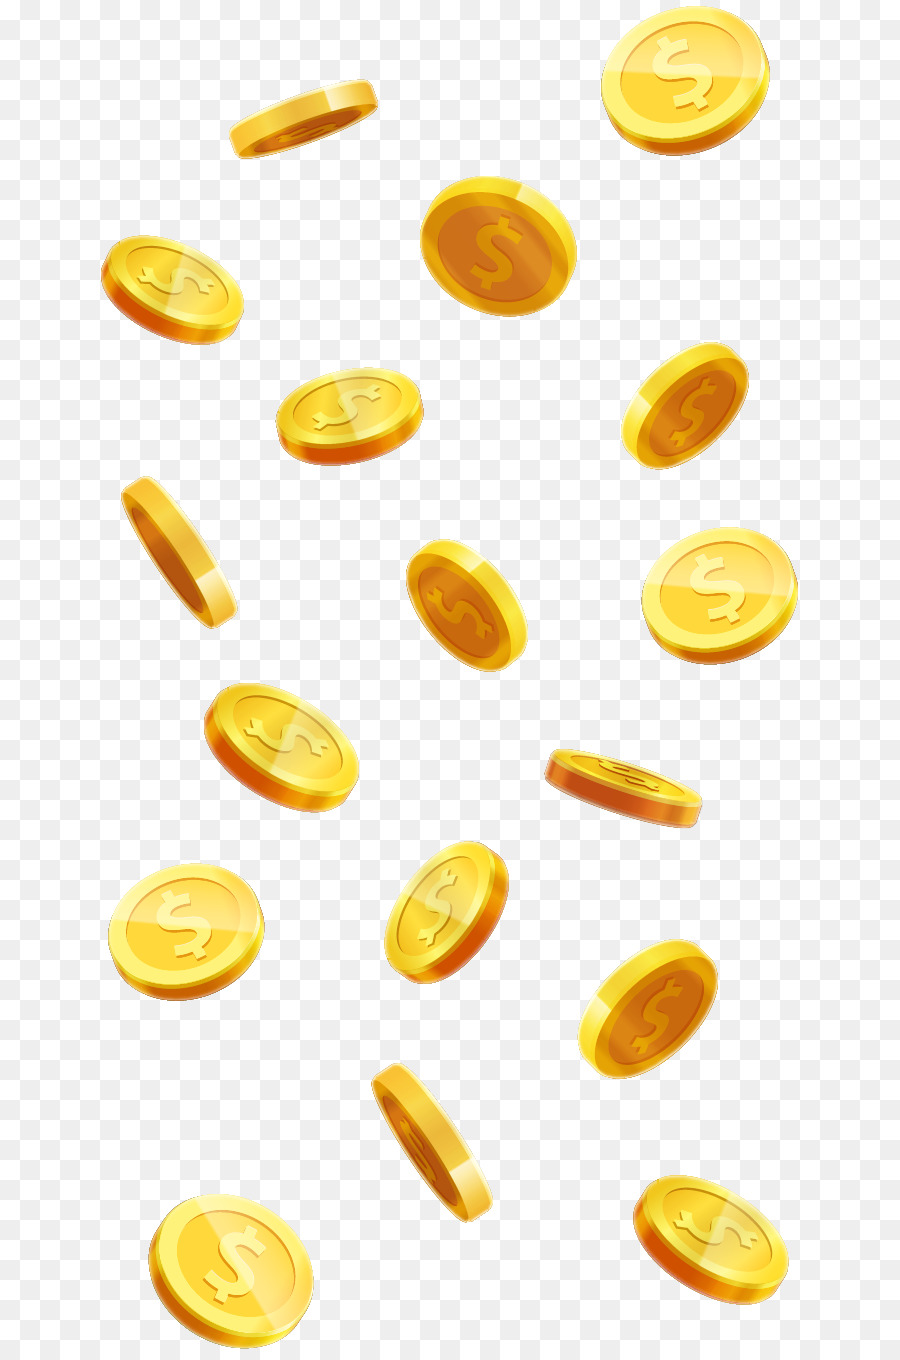 Vector gold coins clipart svg royalty free stock Food Icon Background png download - 708*1355 - Free ... svg royalty free stock